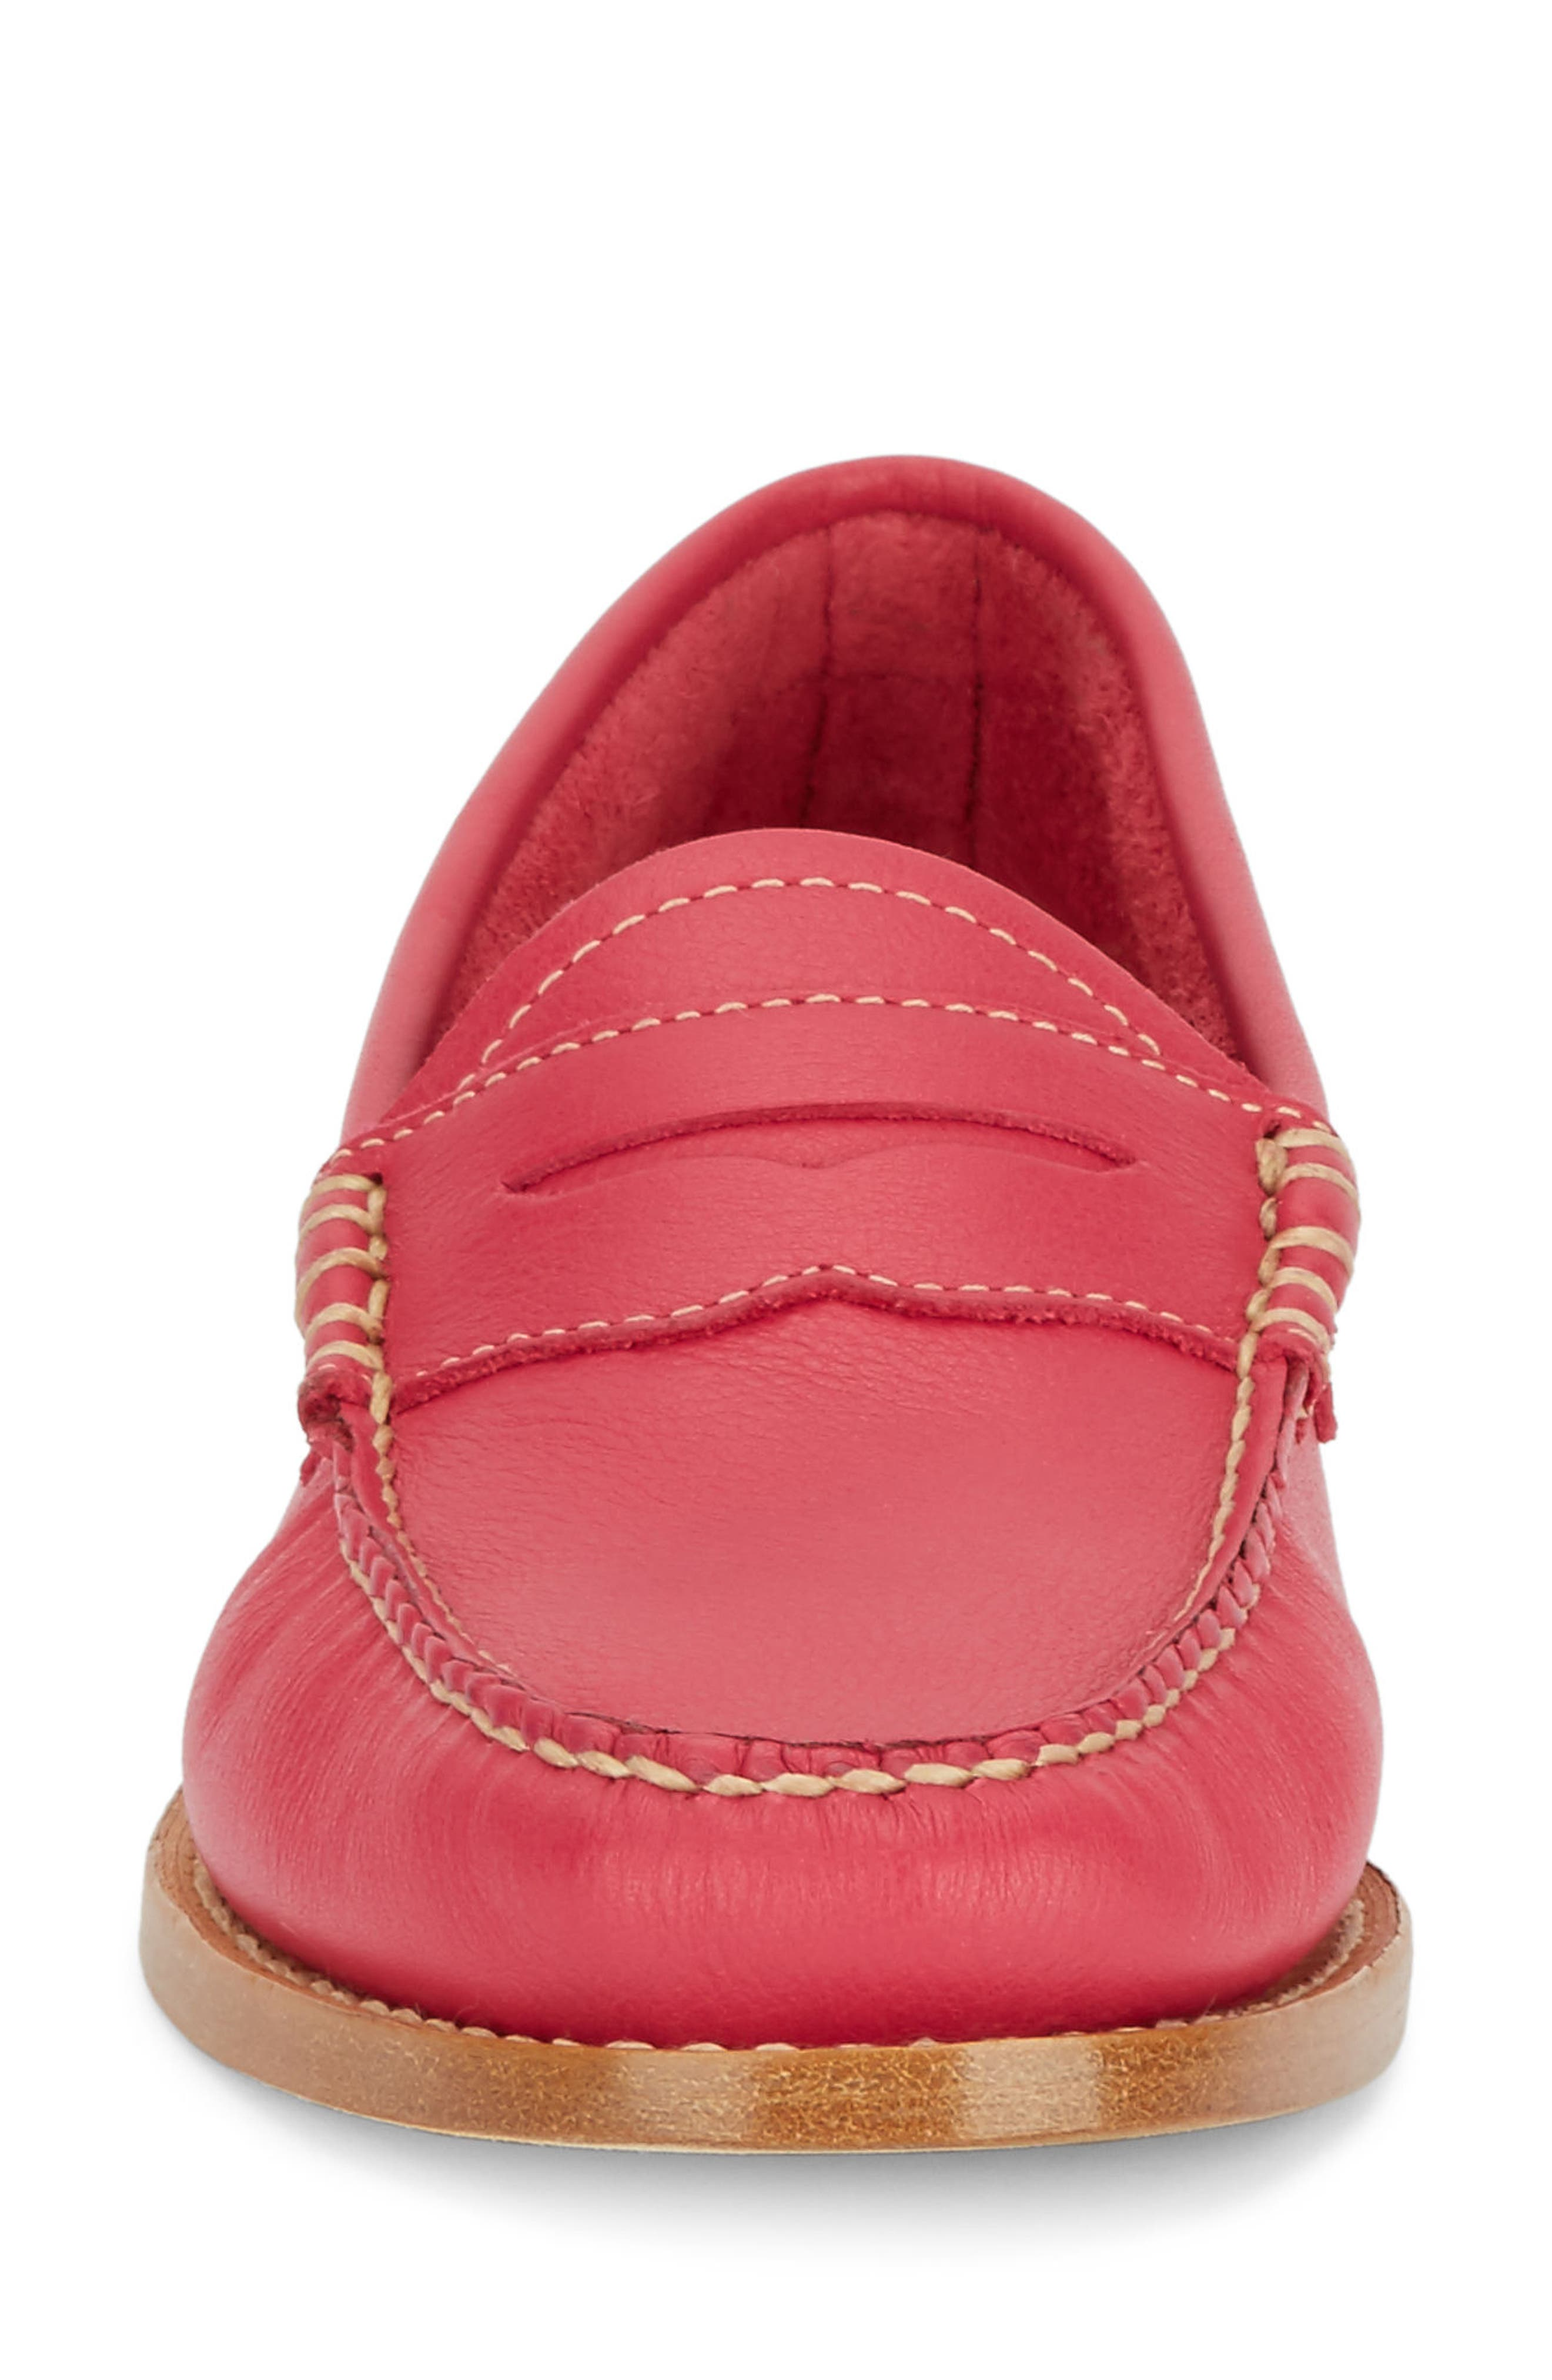 'Whitney' Loafer,                             Alternate thumbnail 4, color,                             BERRY PINK LEATHER